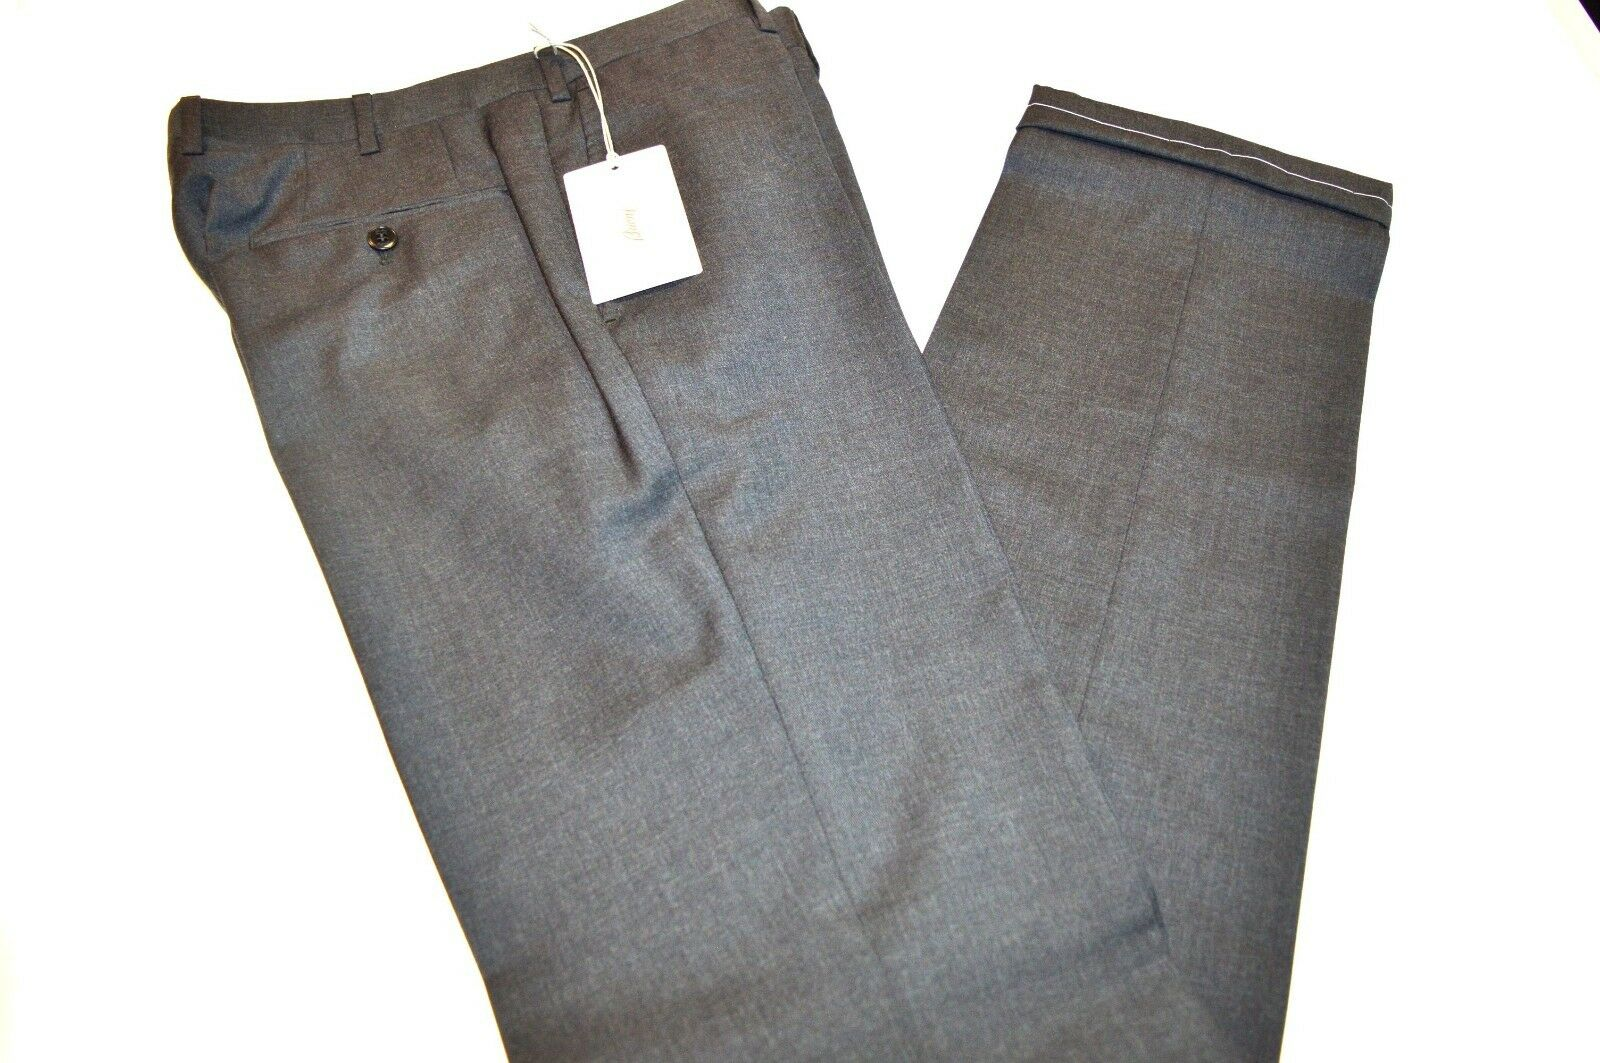 New BRIONI Mod Megeve Trouser  100% Wool  Dress Pant  Size 42 Us 58 Eu Megeve2